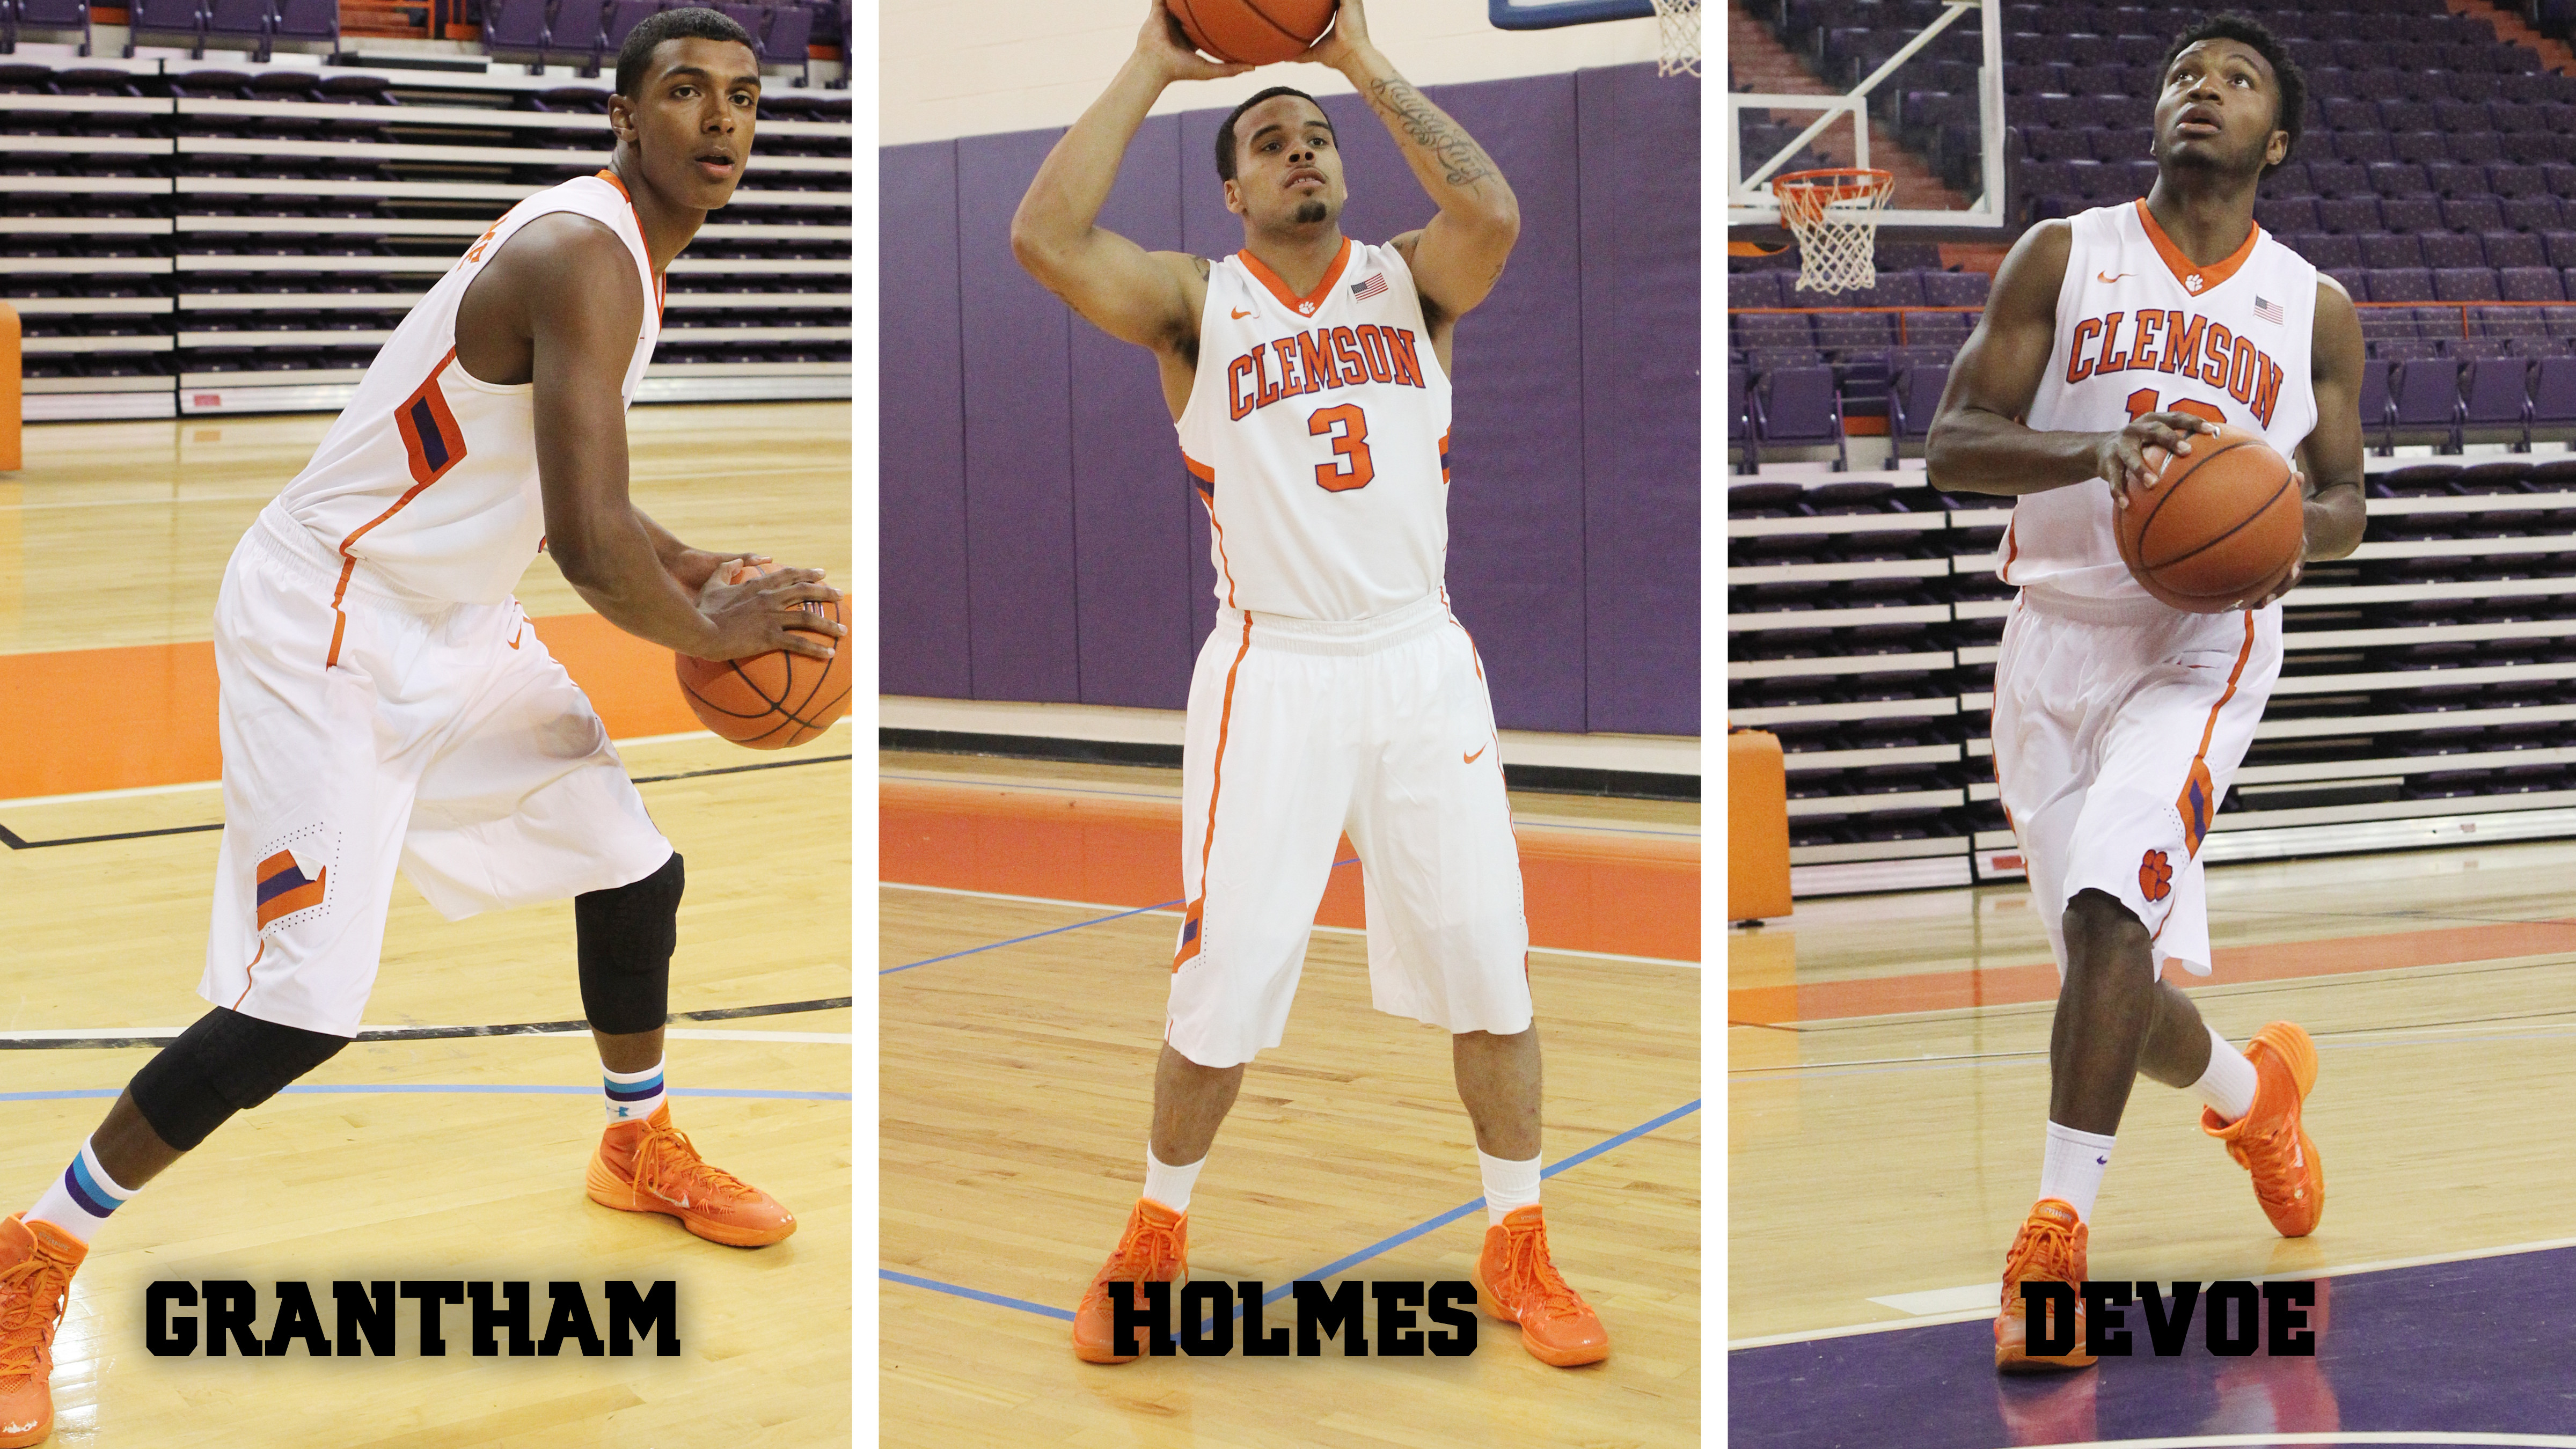 Talented Trio of Newcomers Arrives in Tigertown